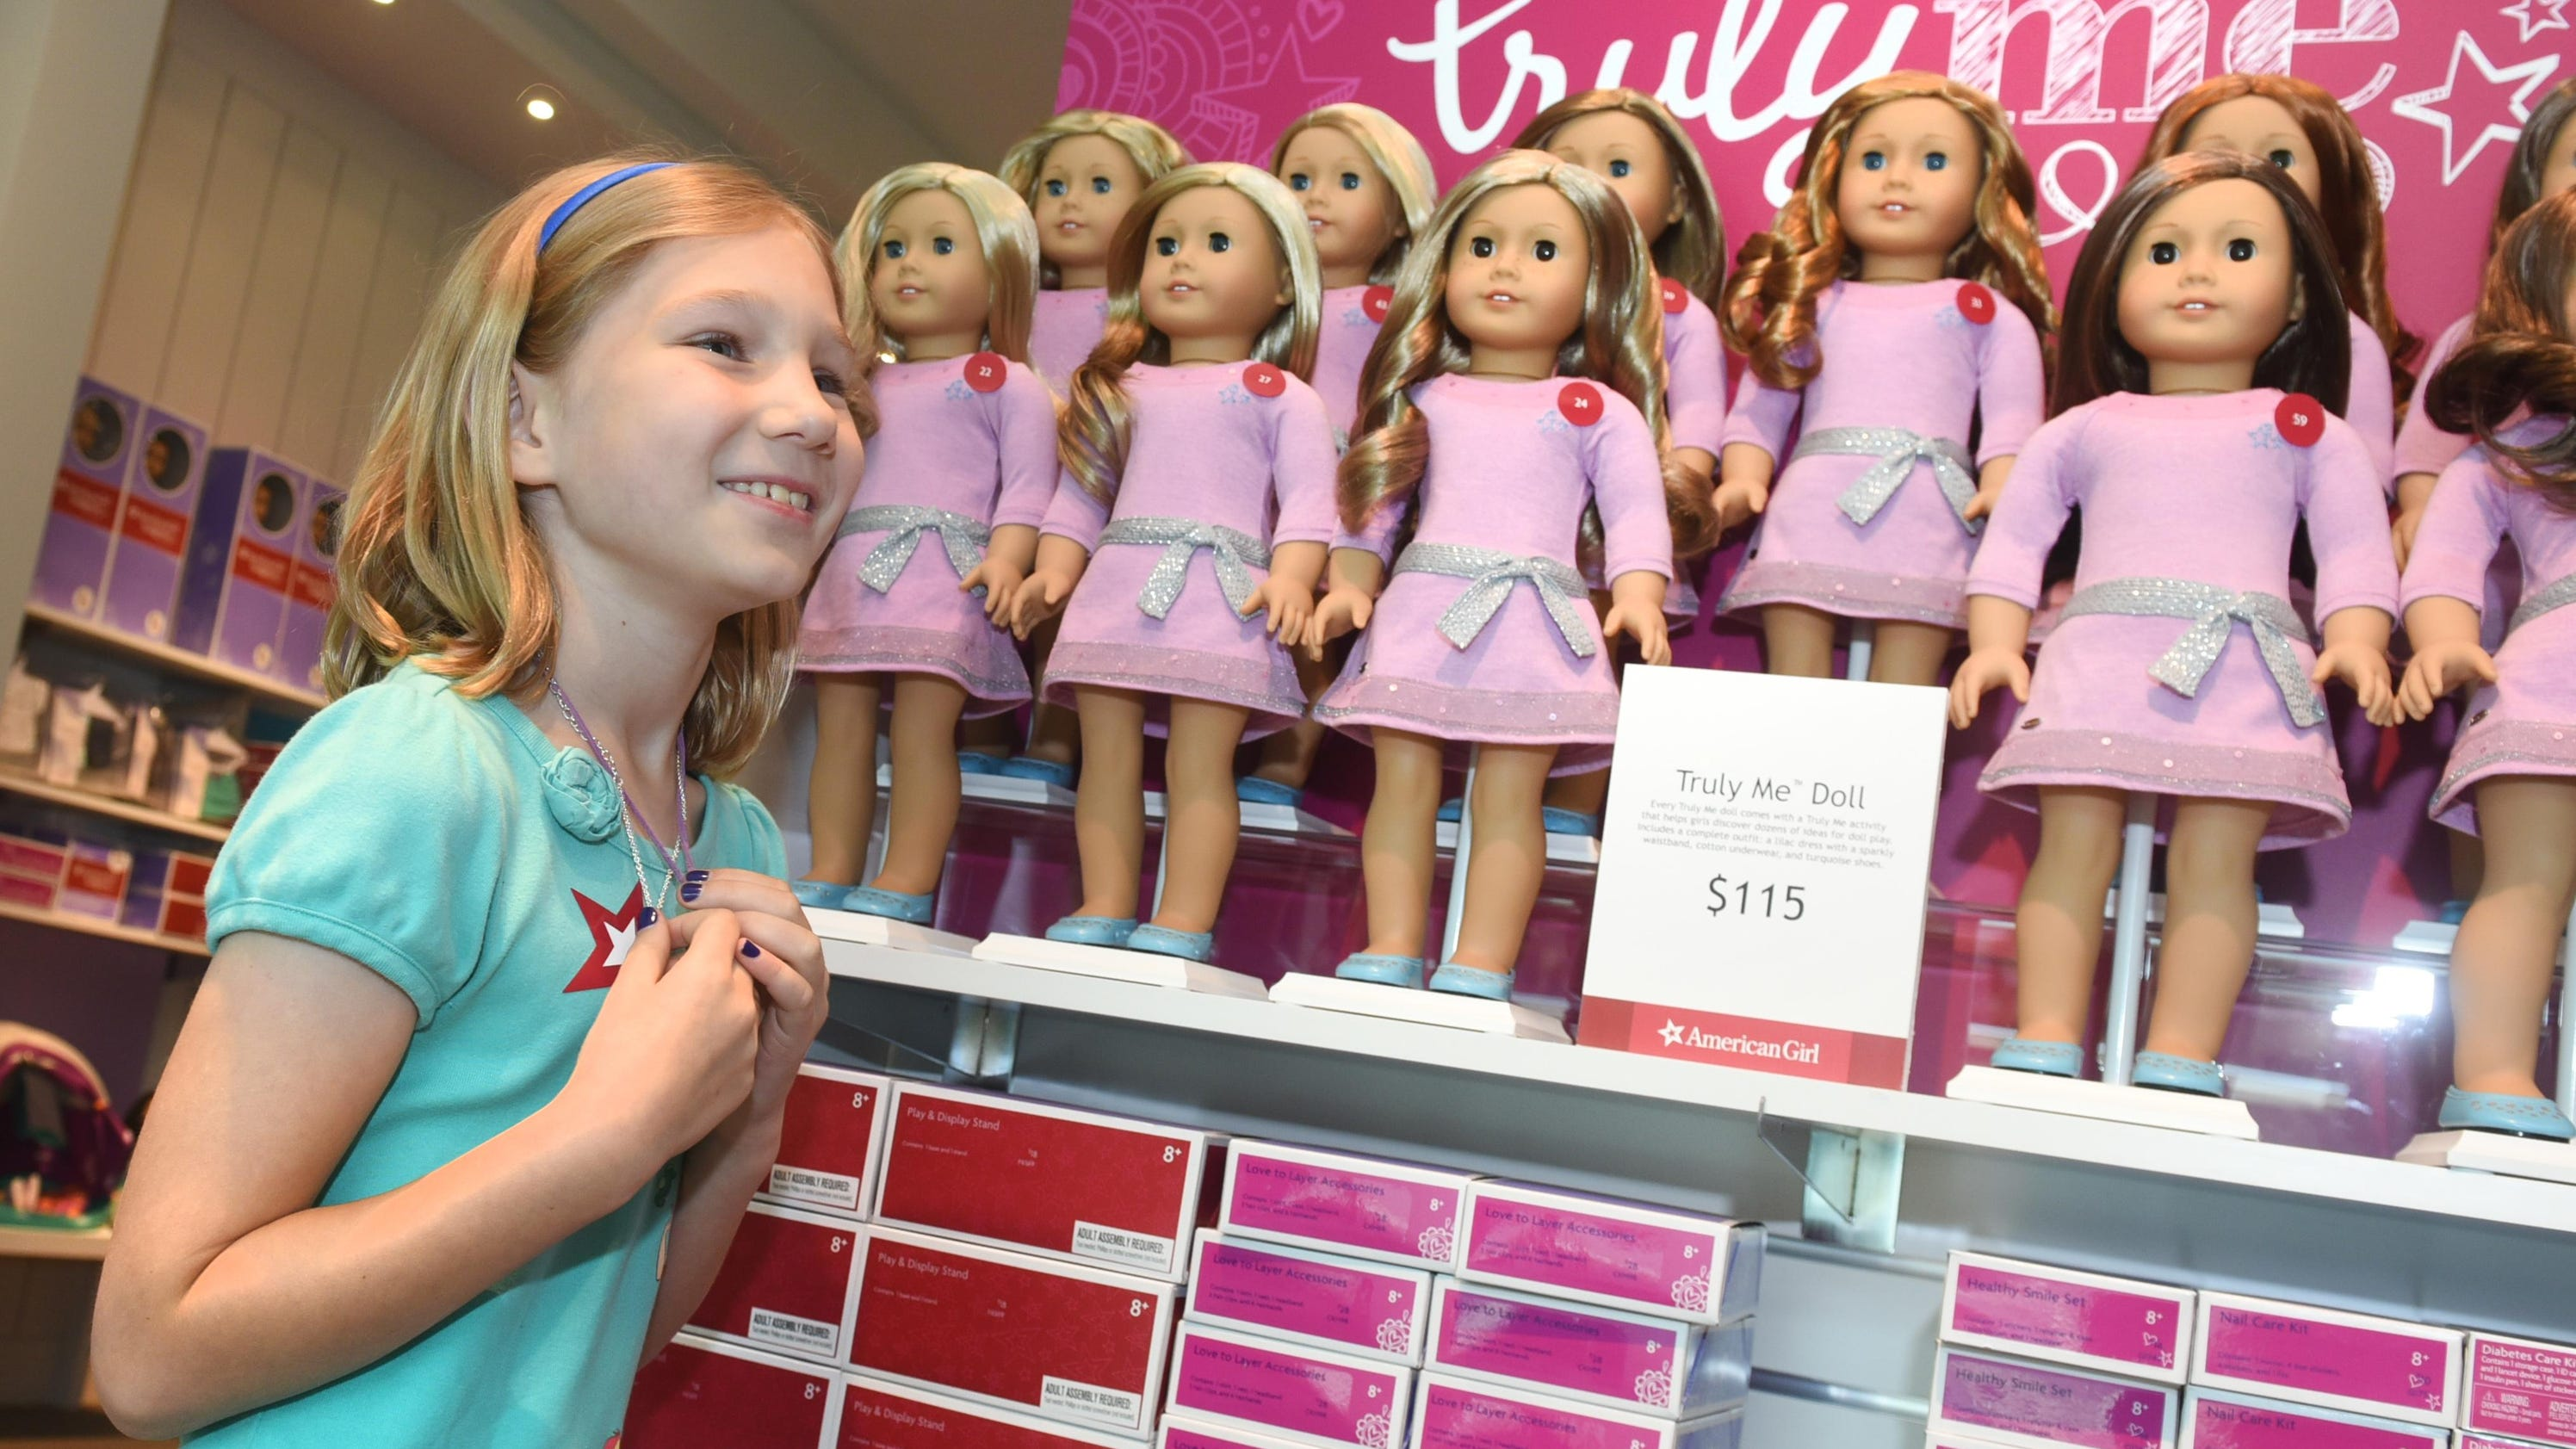 American Girl Doll Store Clothes